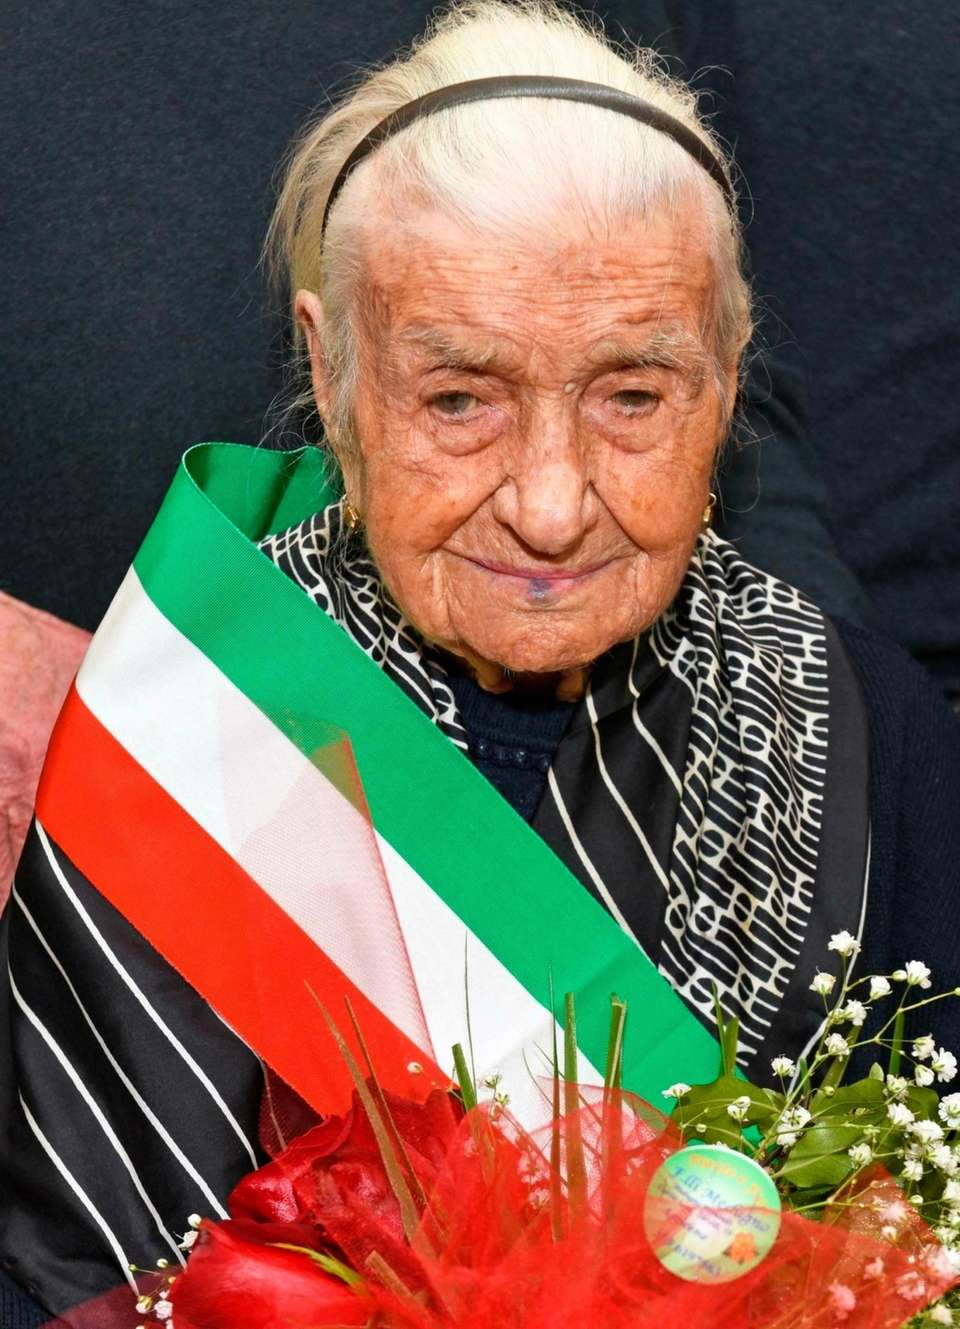 Giuseppina Robucci, a 116-year-old Italian woman who authorities